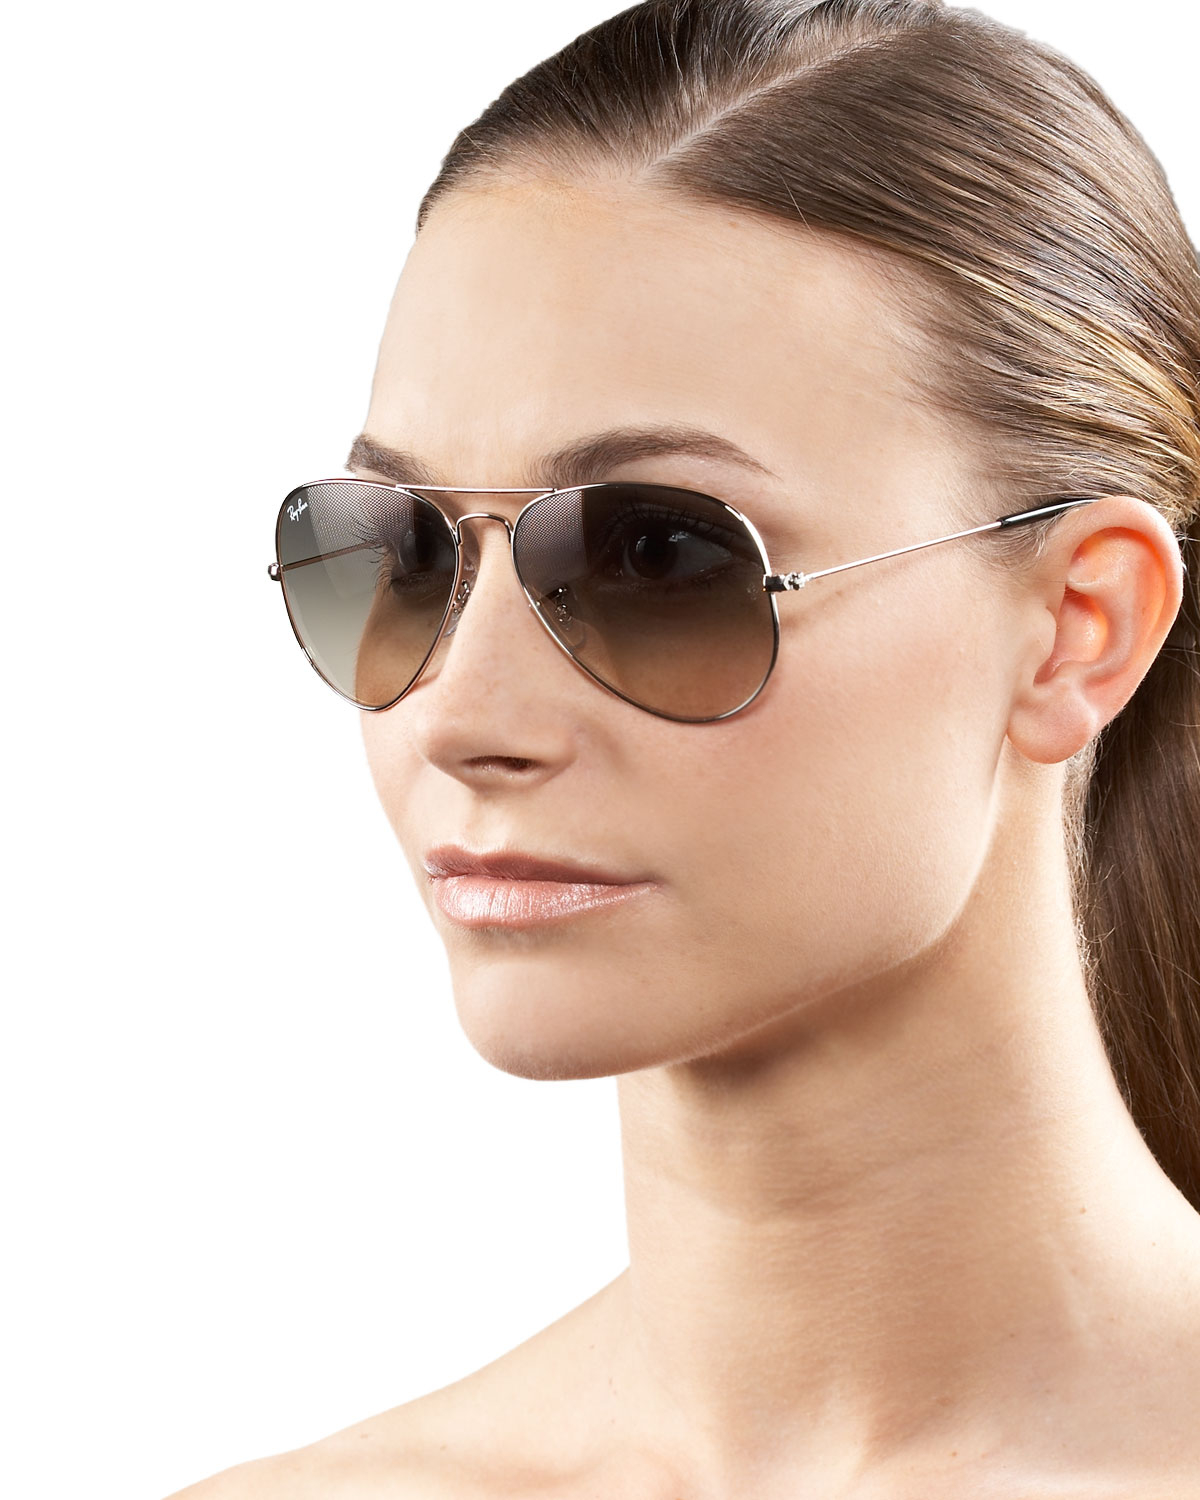 Ray Ban Classic Aviator Sunglasses In Brown Lyst